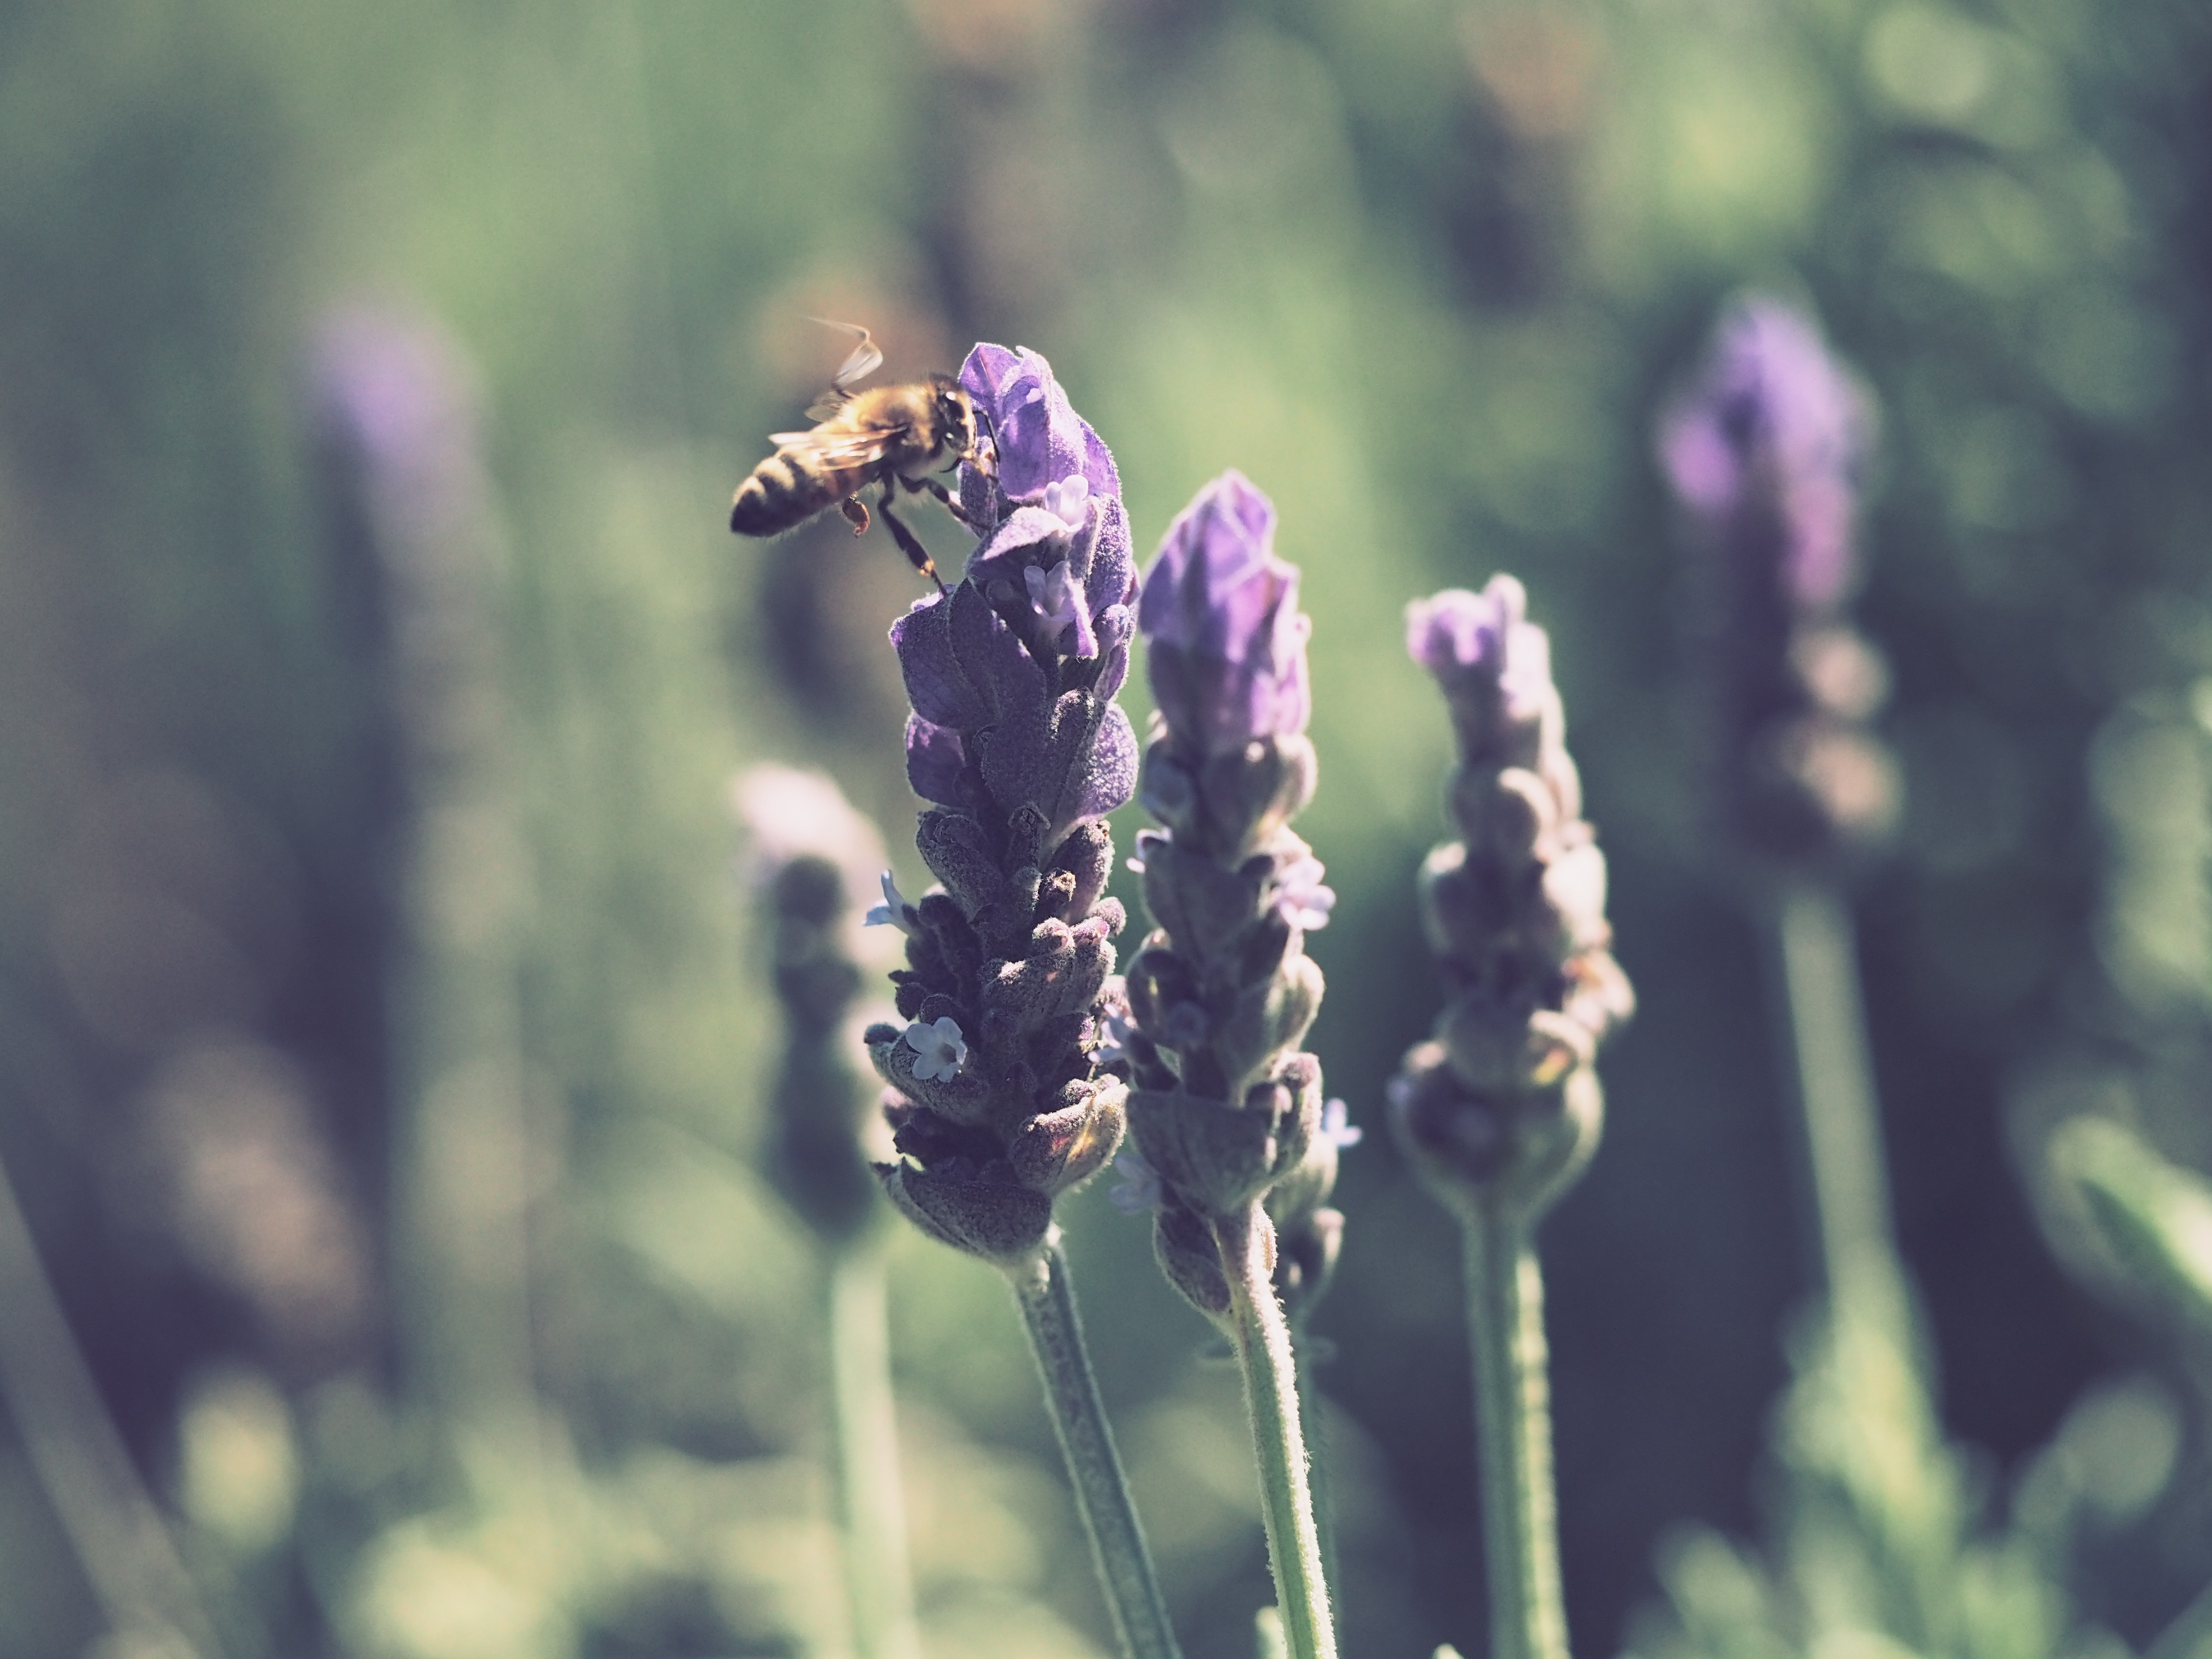 Yellow and black honey bee on purple lavender flower photo